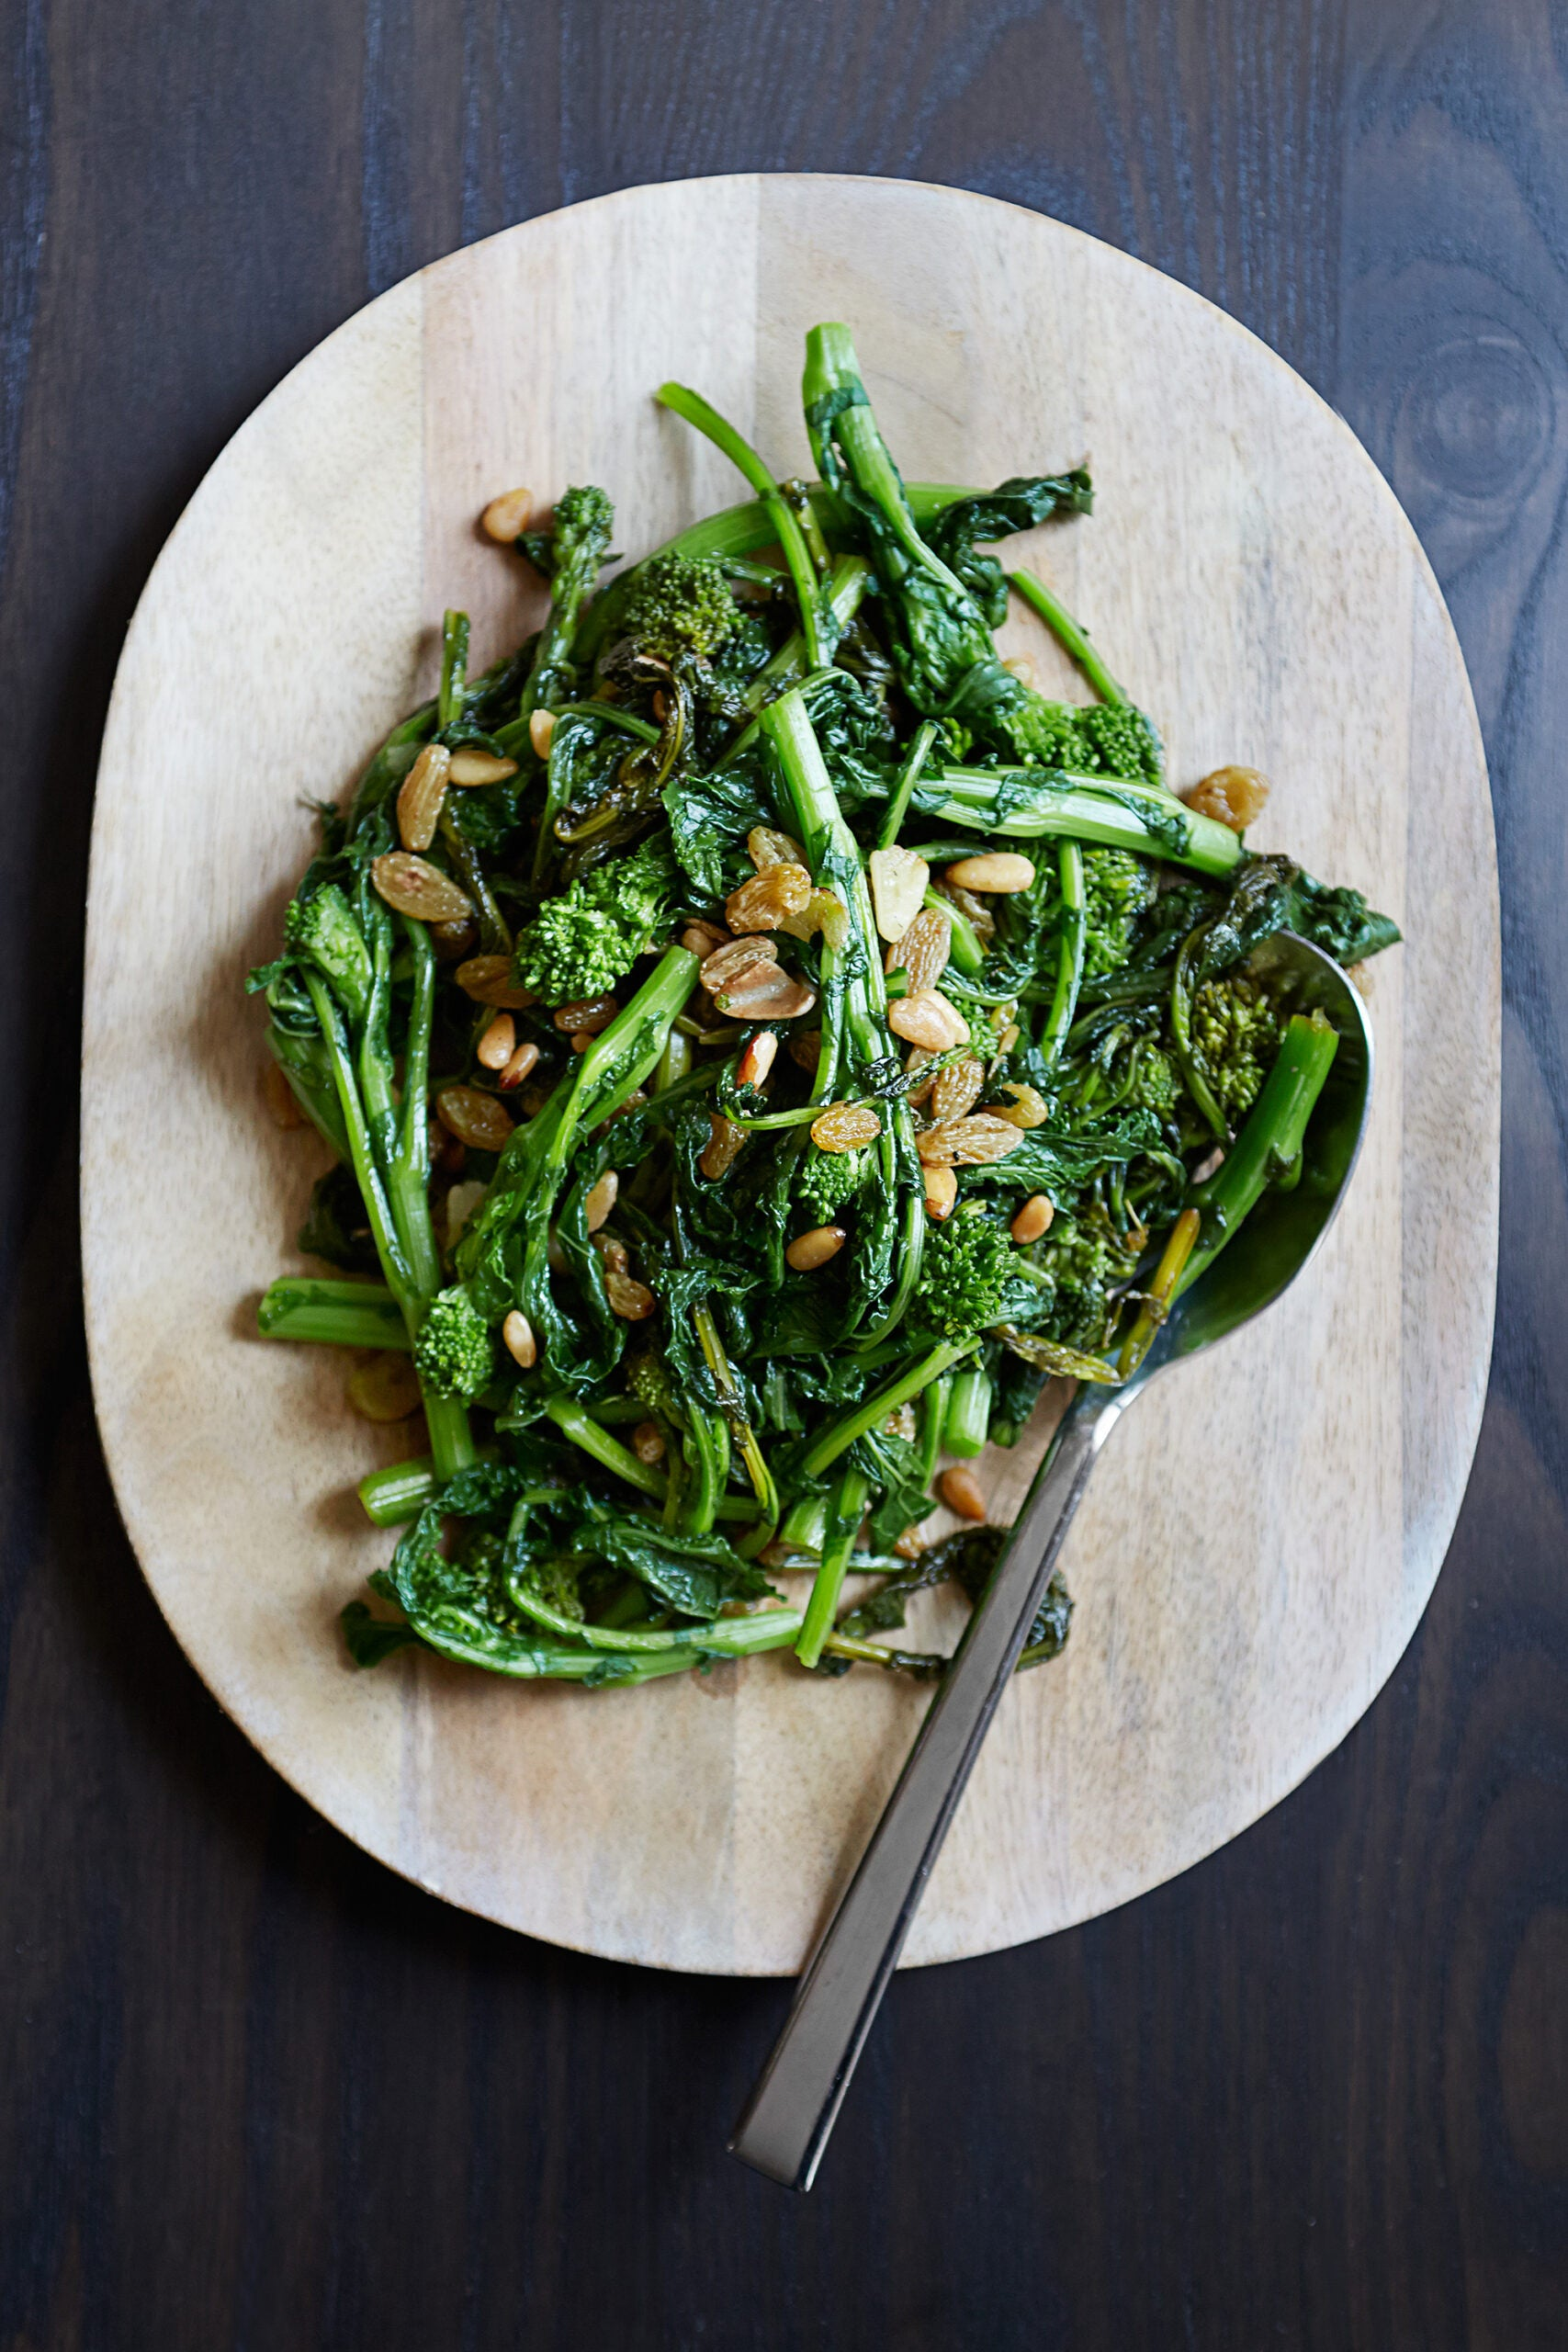 Broccoli Rabe with Pine Nuts & Golden Raisins